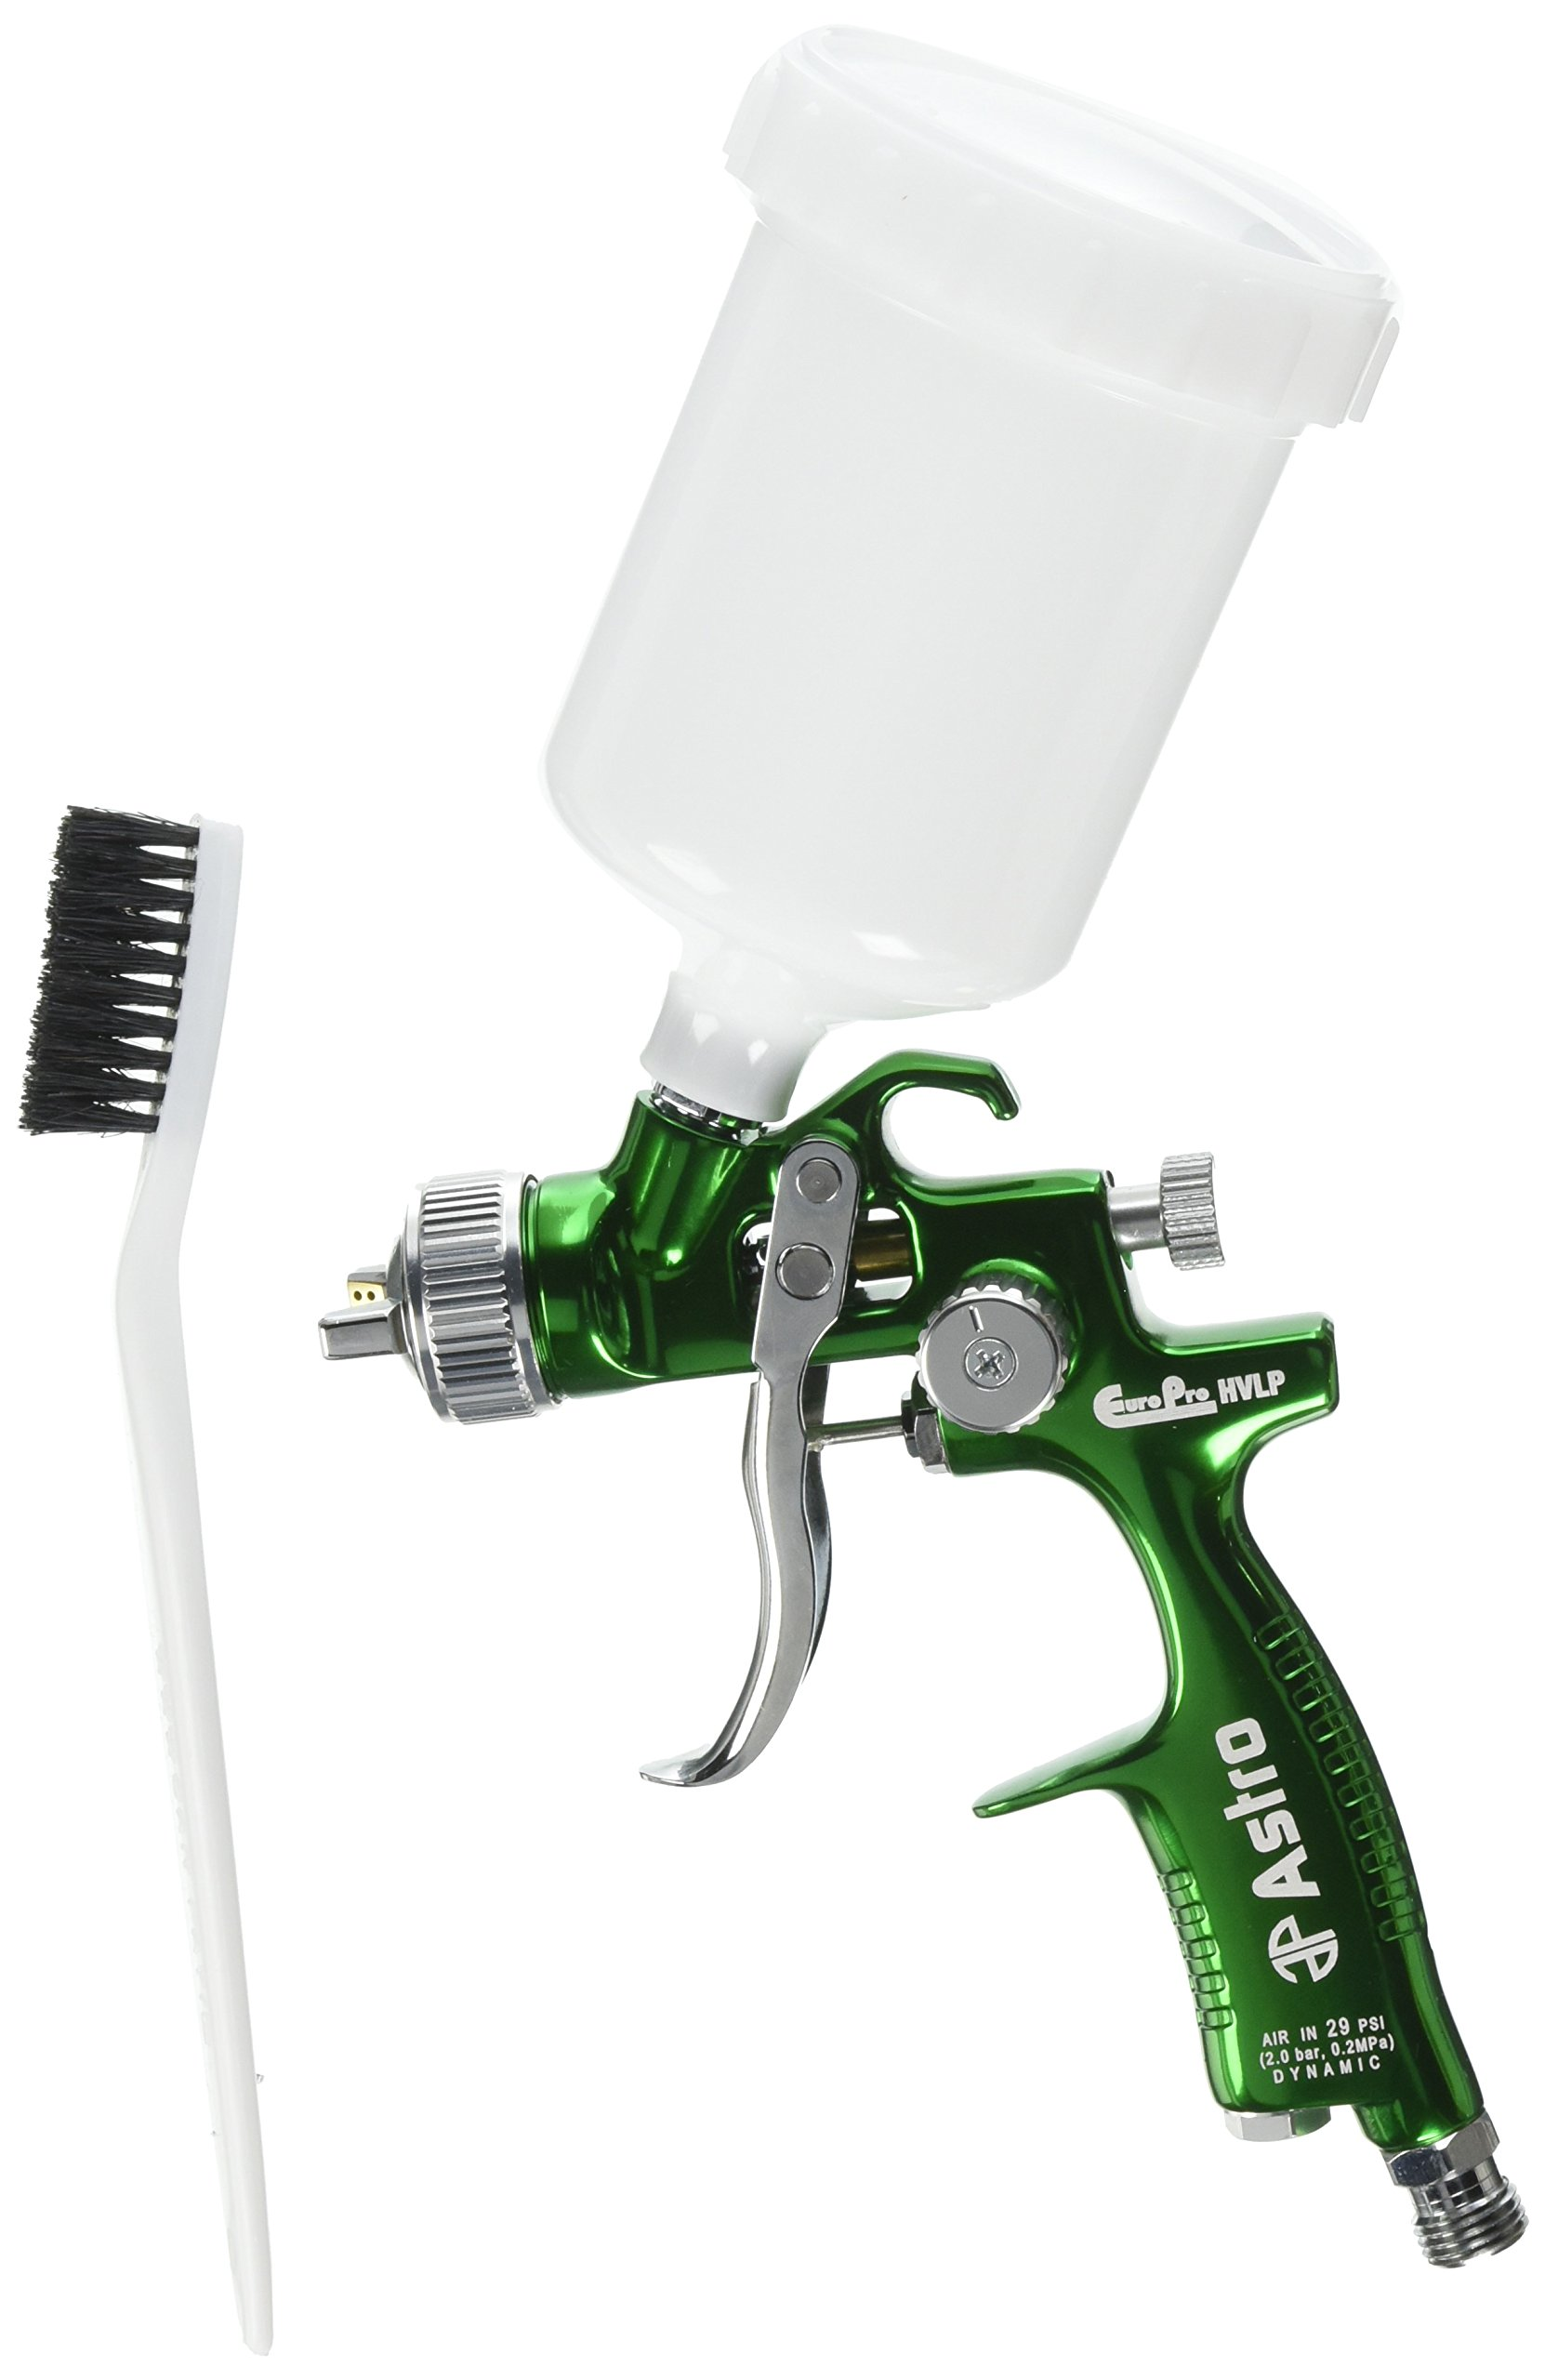 Astro EUROHVT1 EuroPro Forged HVLP Touch Up Gun with 1mm Nozzle and Plastic Cup